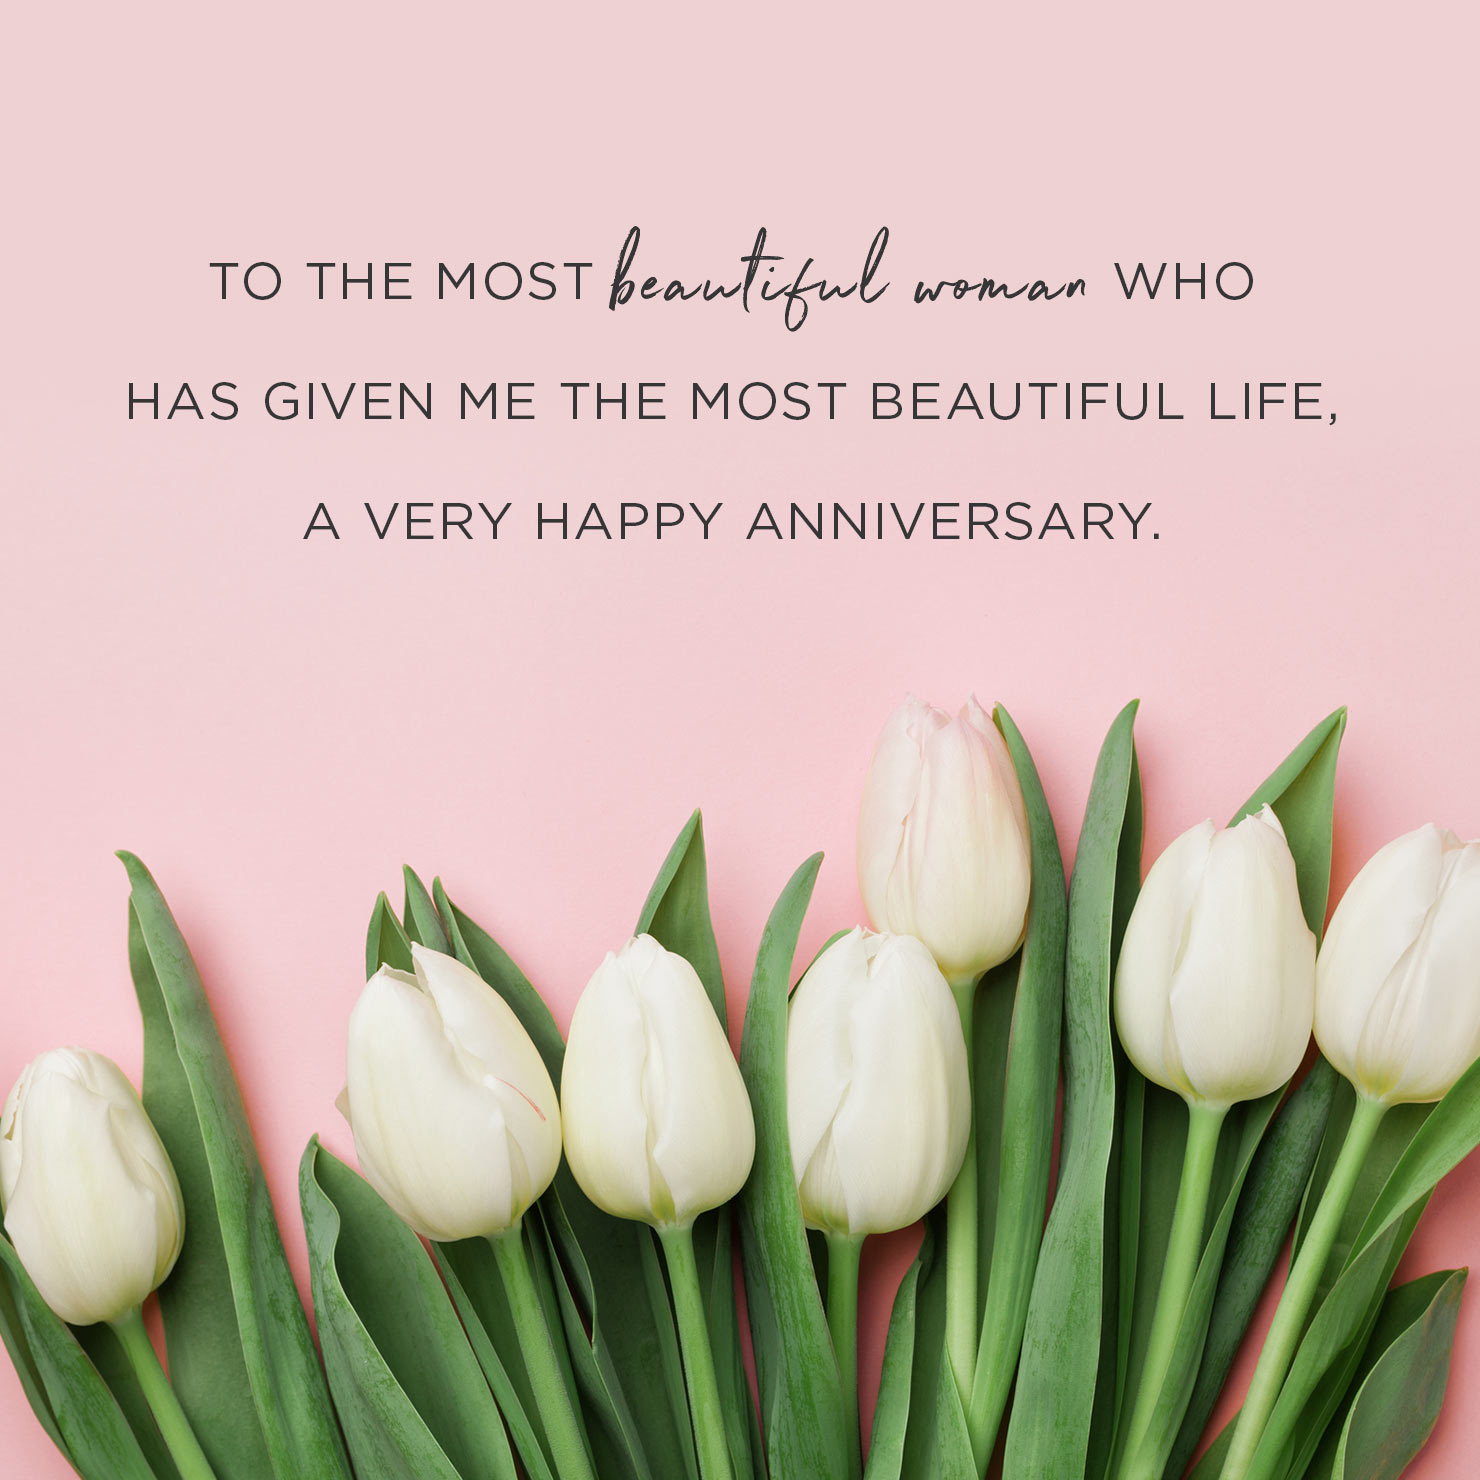 Wedding Anniversary Wishes: 80 Heartfelt Happy Anniversary Messages With Images